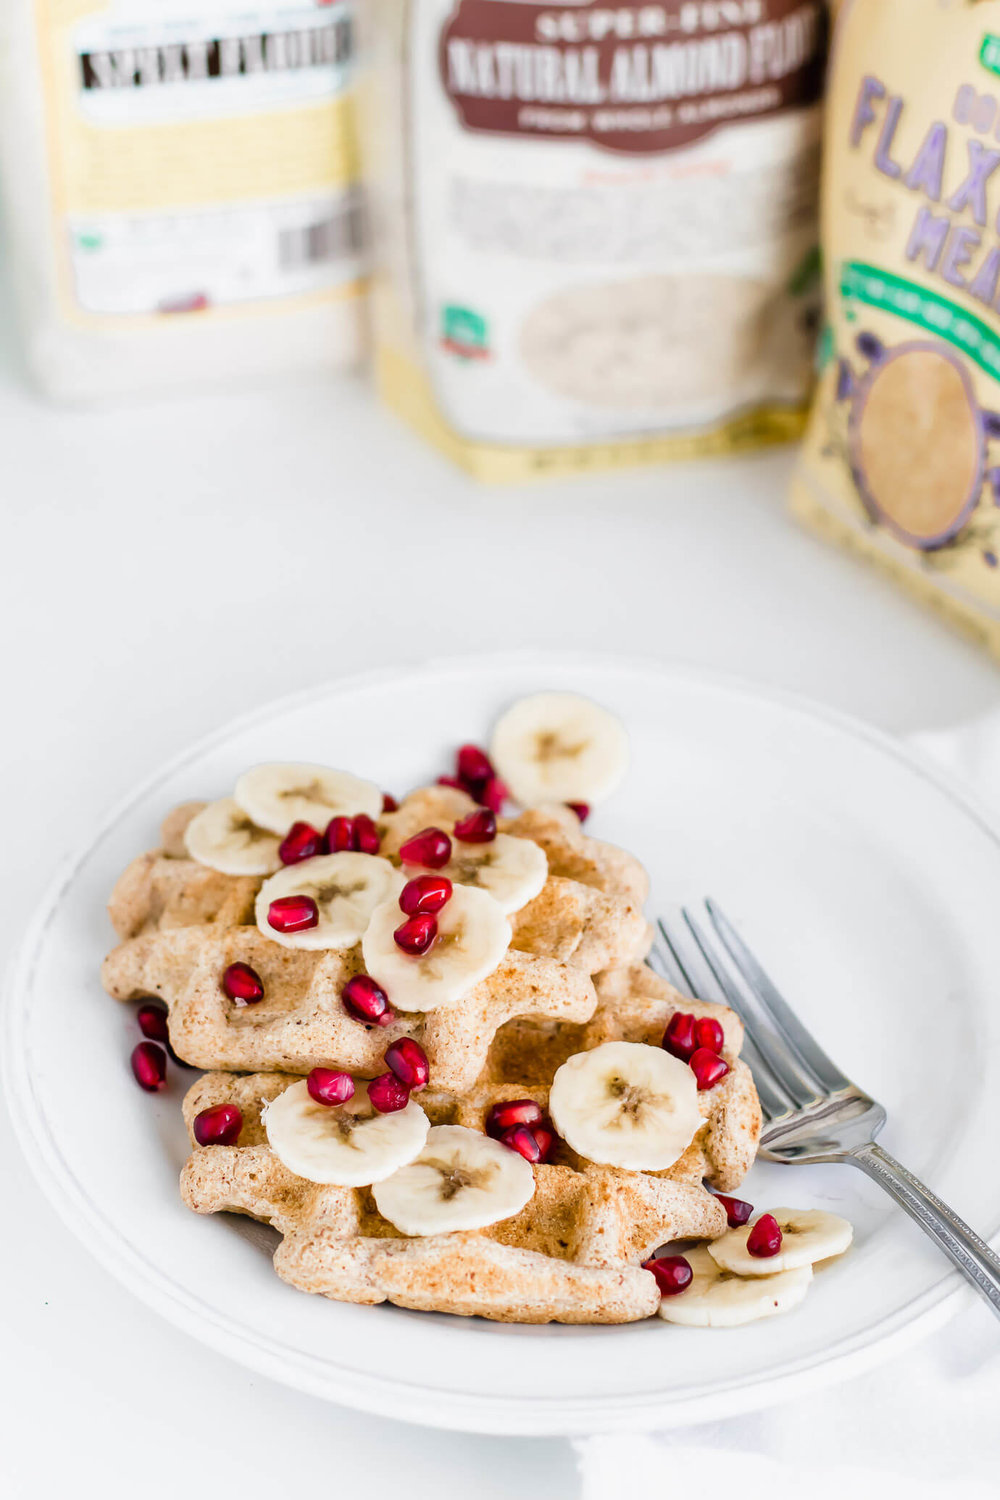 Waffles_Bobs_Red_Mill-1-of-2-1.jpg